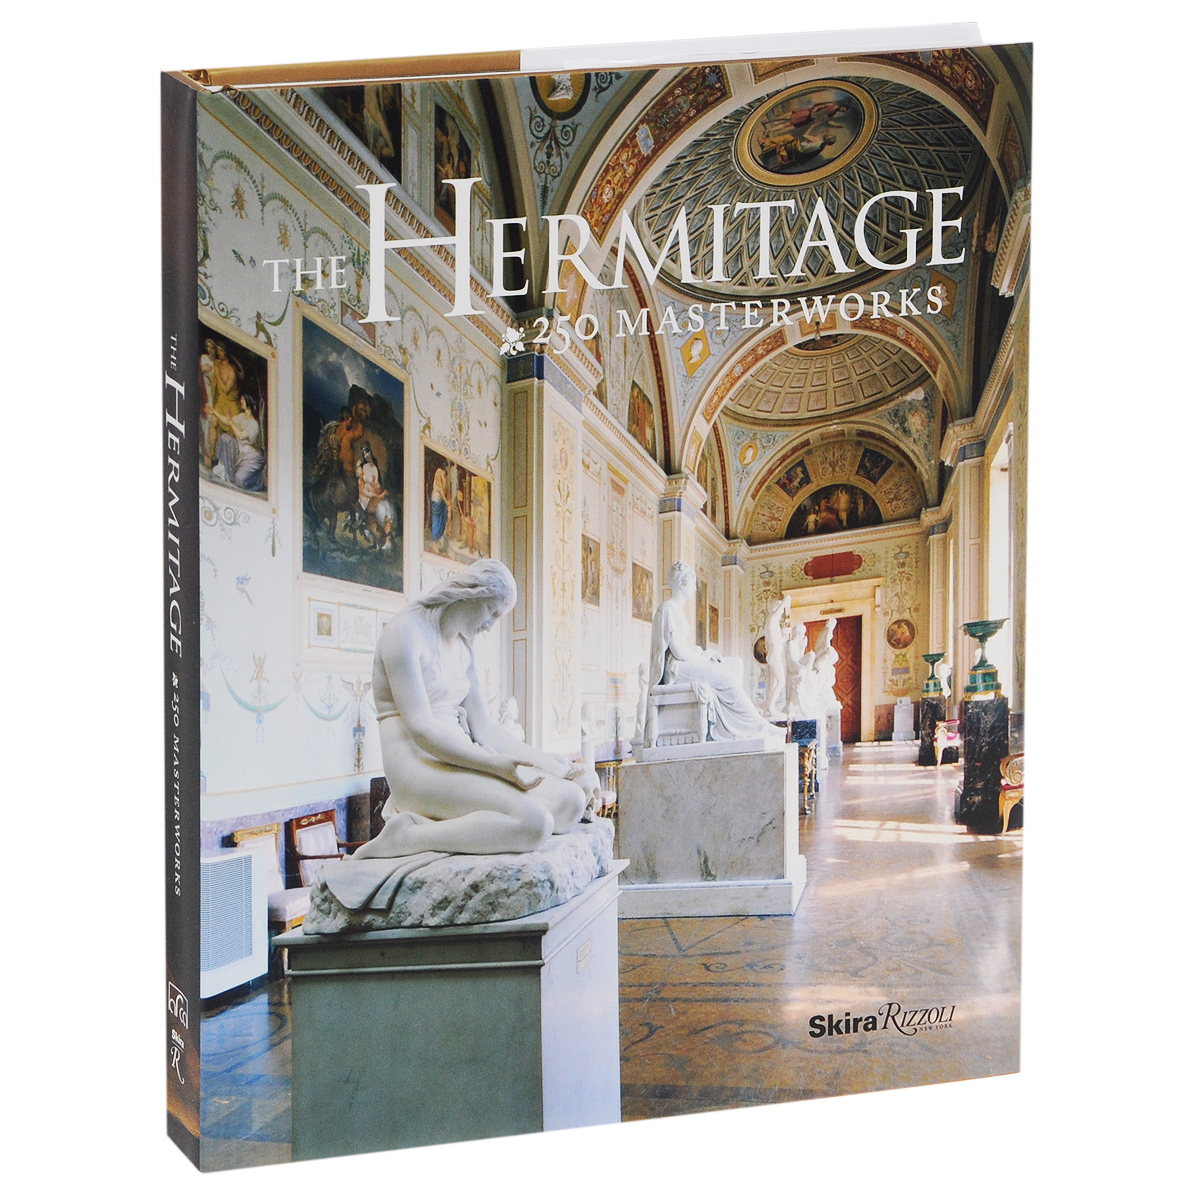 The Hermitage: 250 Masterworks the hermitage great collections of a great museum